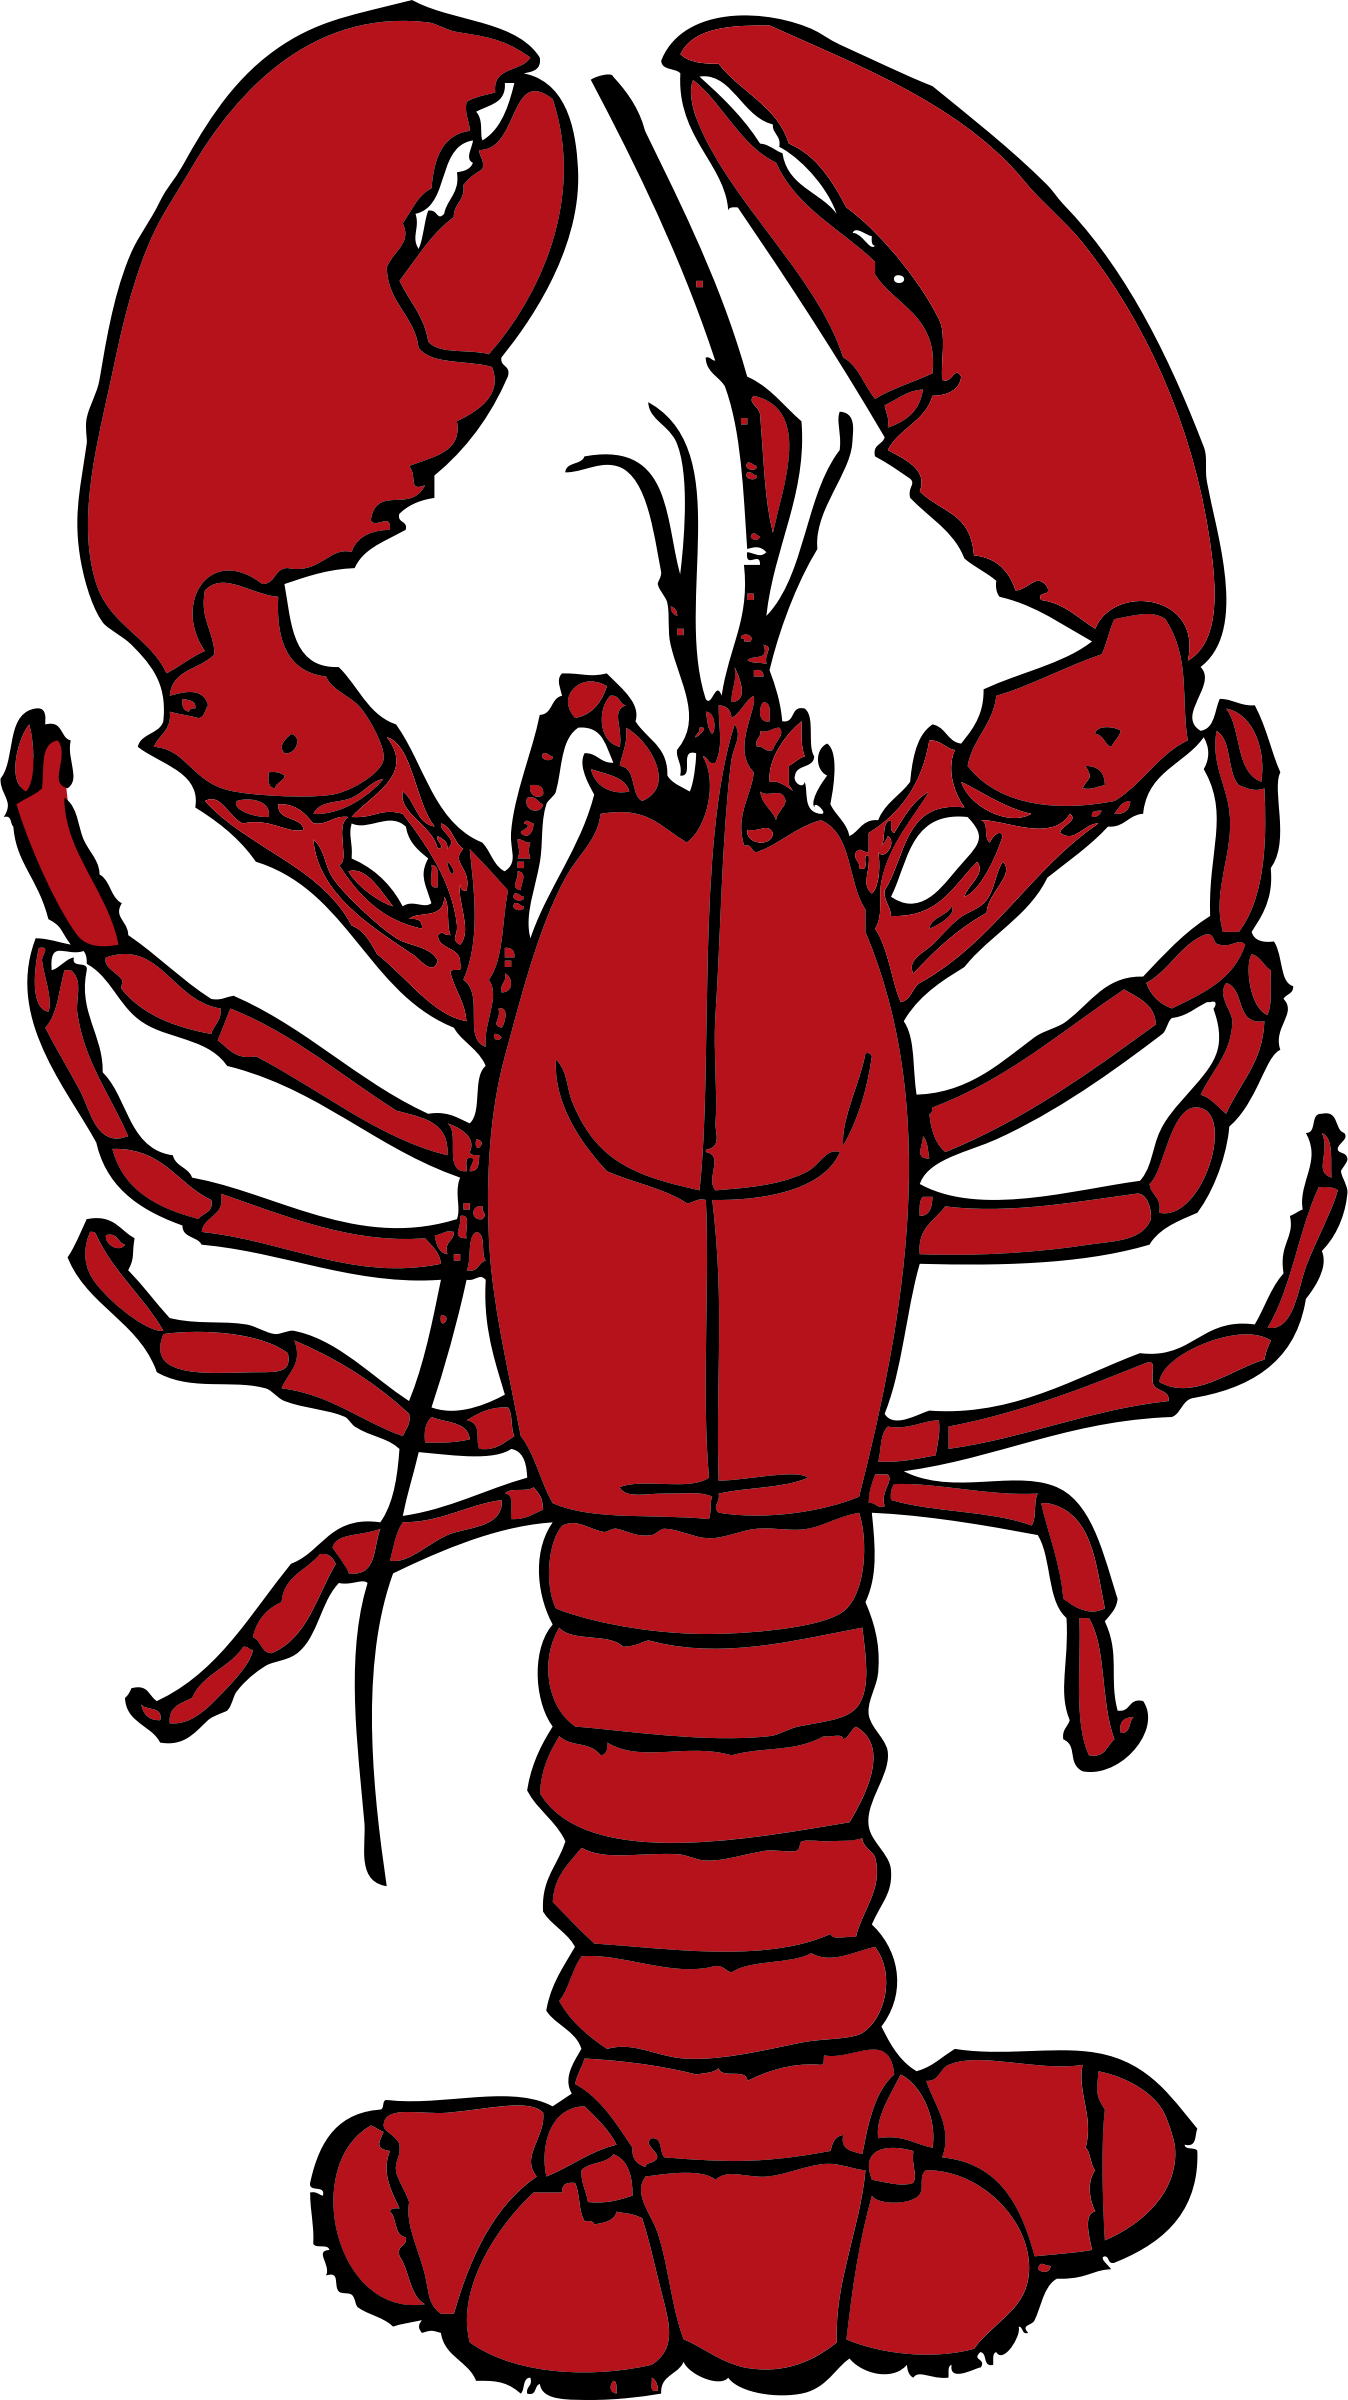 Lobster by johnny automatic. Crabs clipart pdf